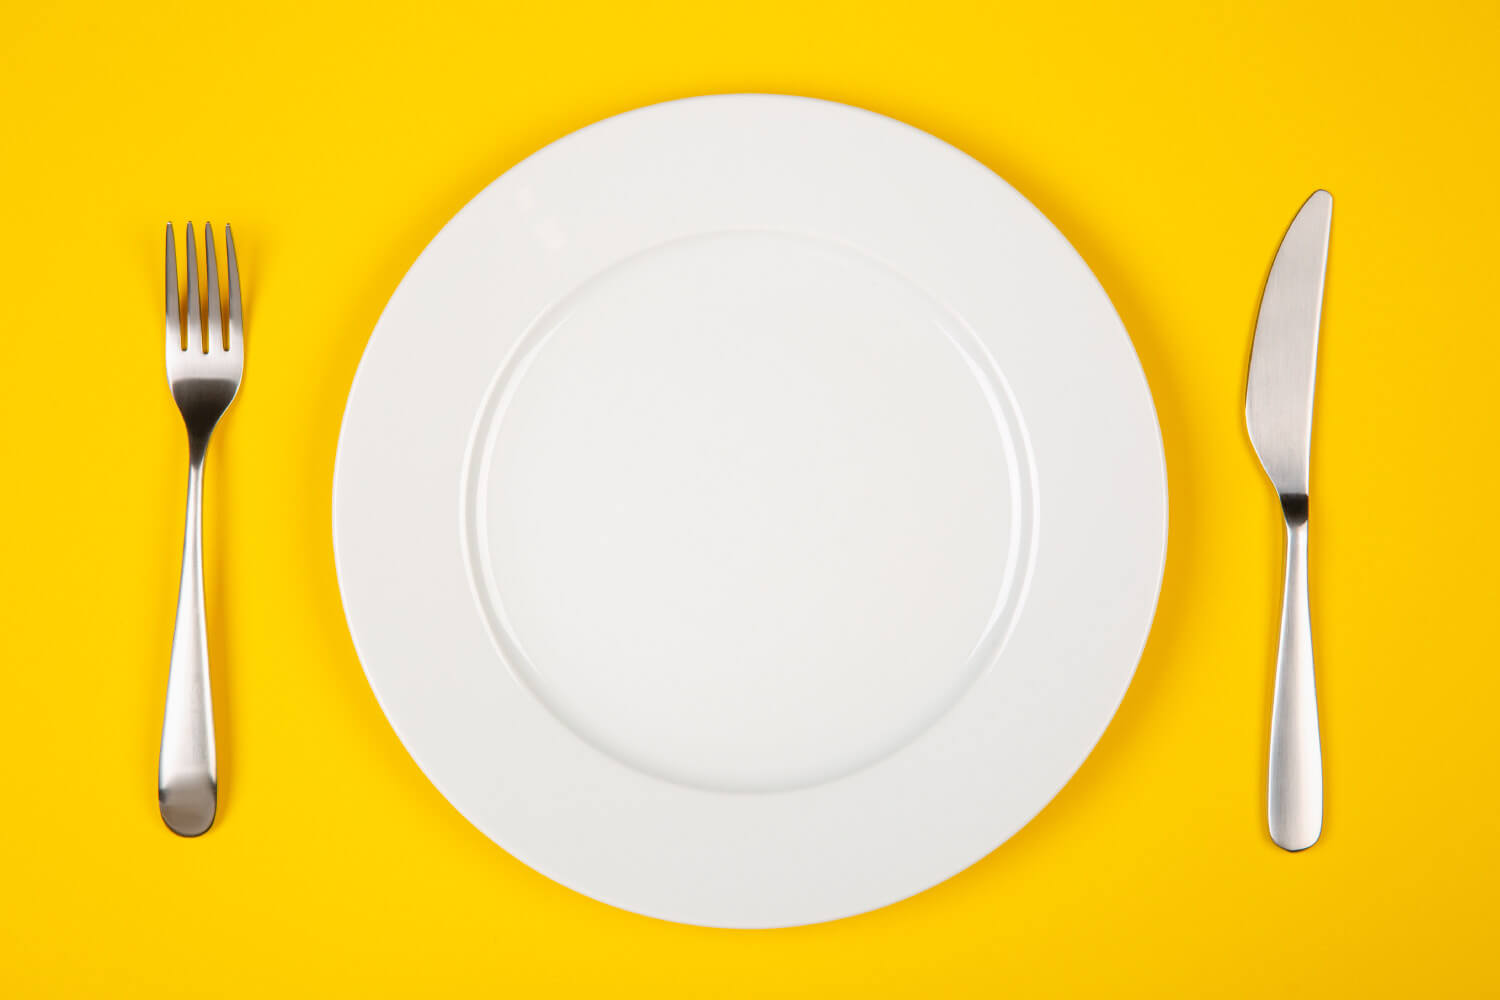 Aerial view of a white plate with silverware on a yellow table at a restaurant